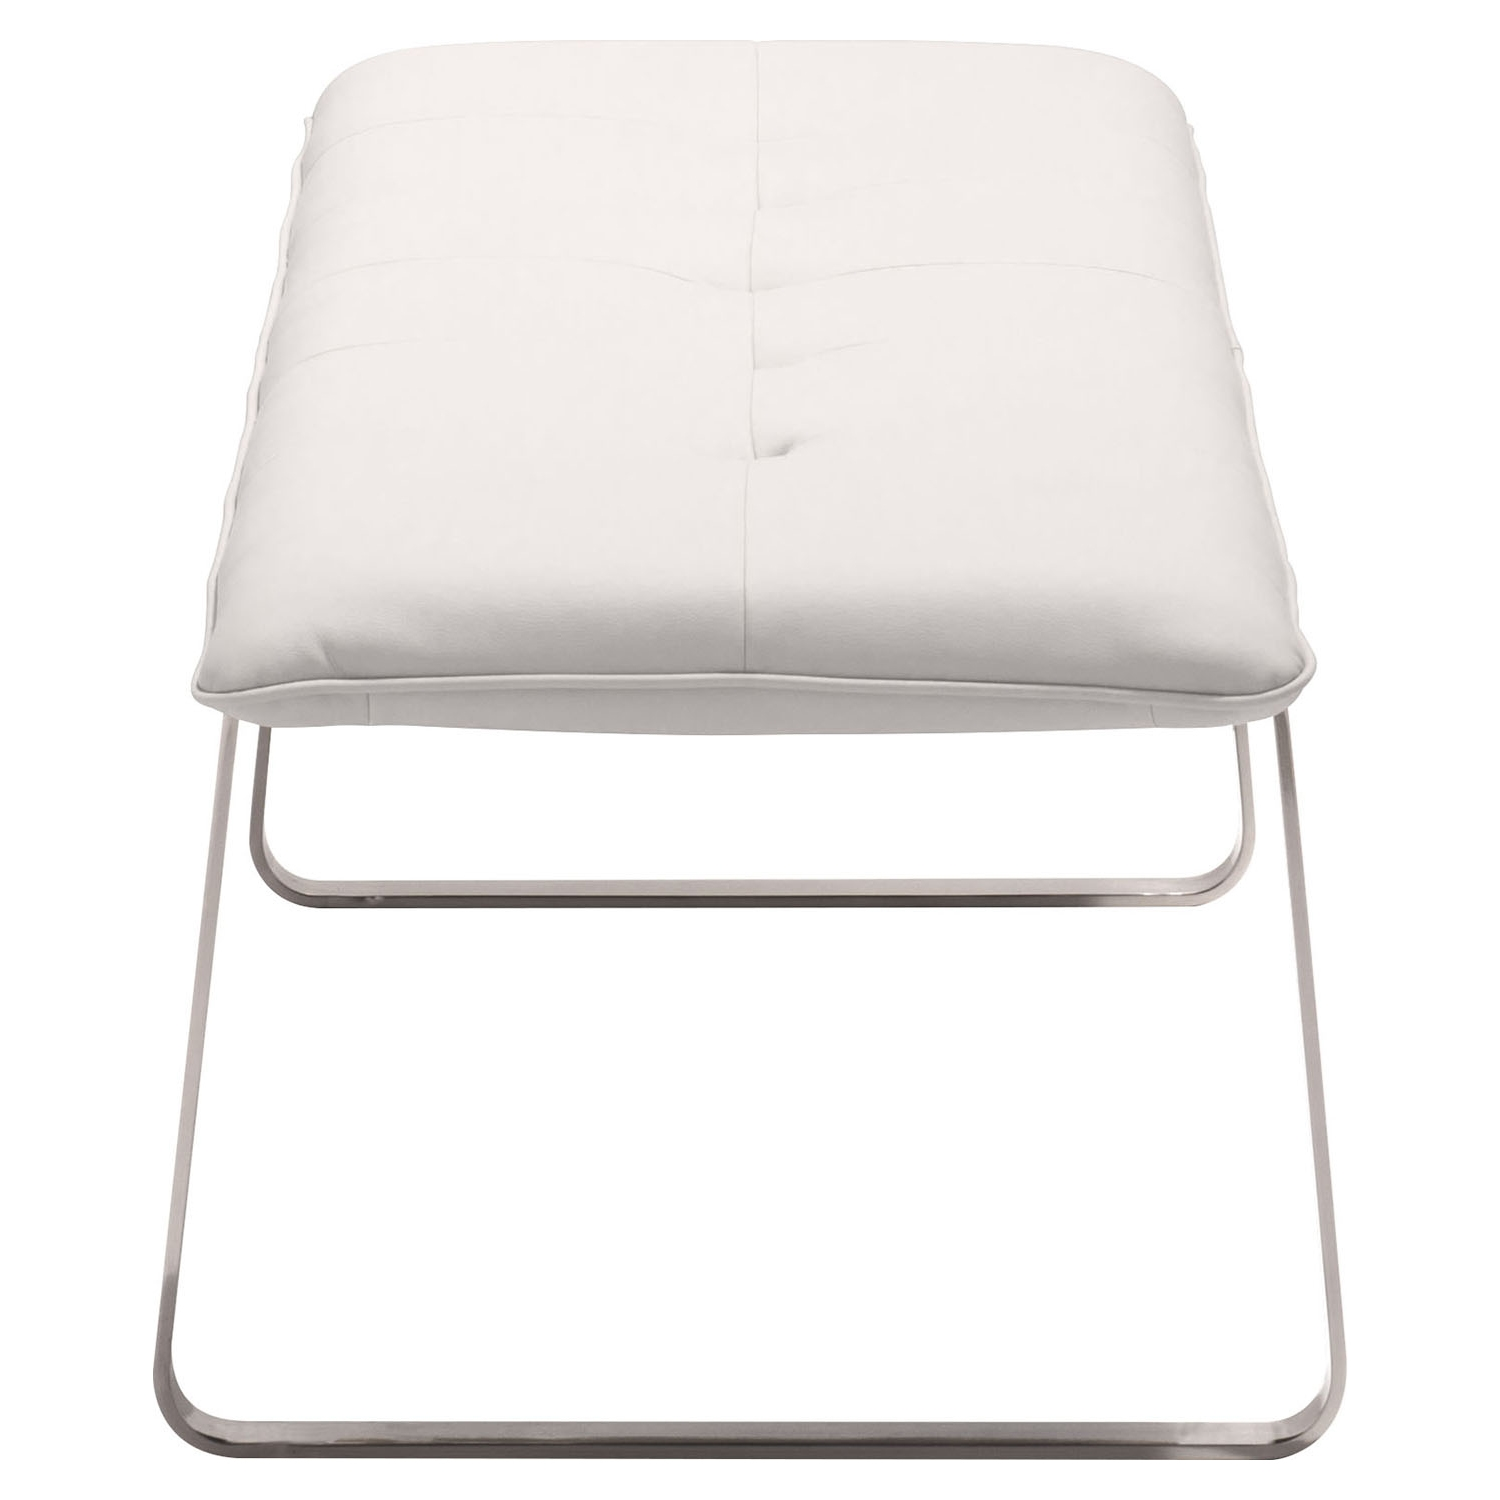 Cartierville Bench - Tufted, White - ZM-500178